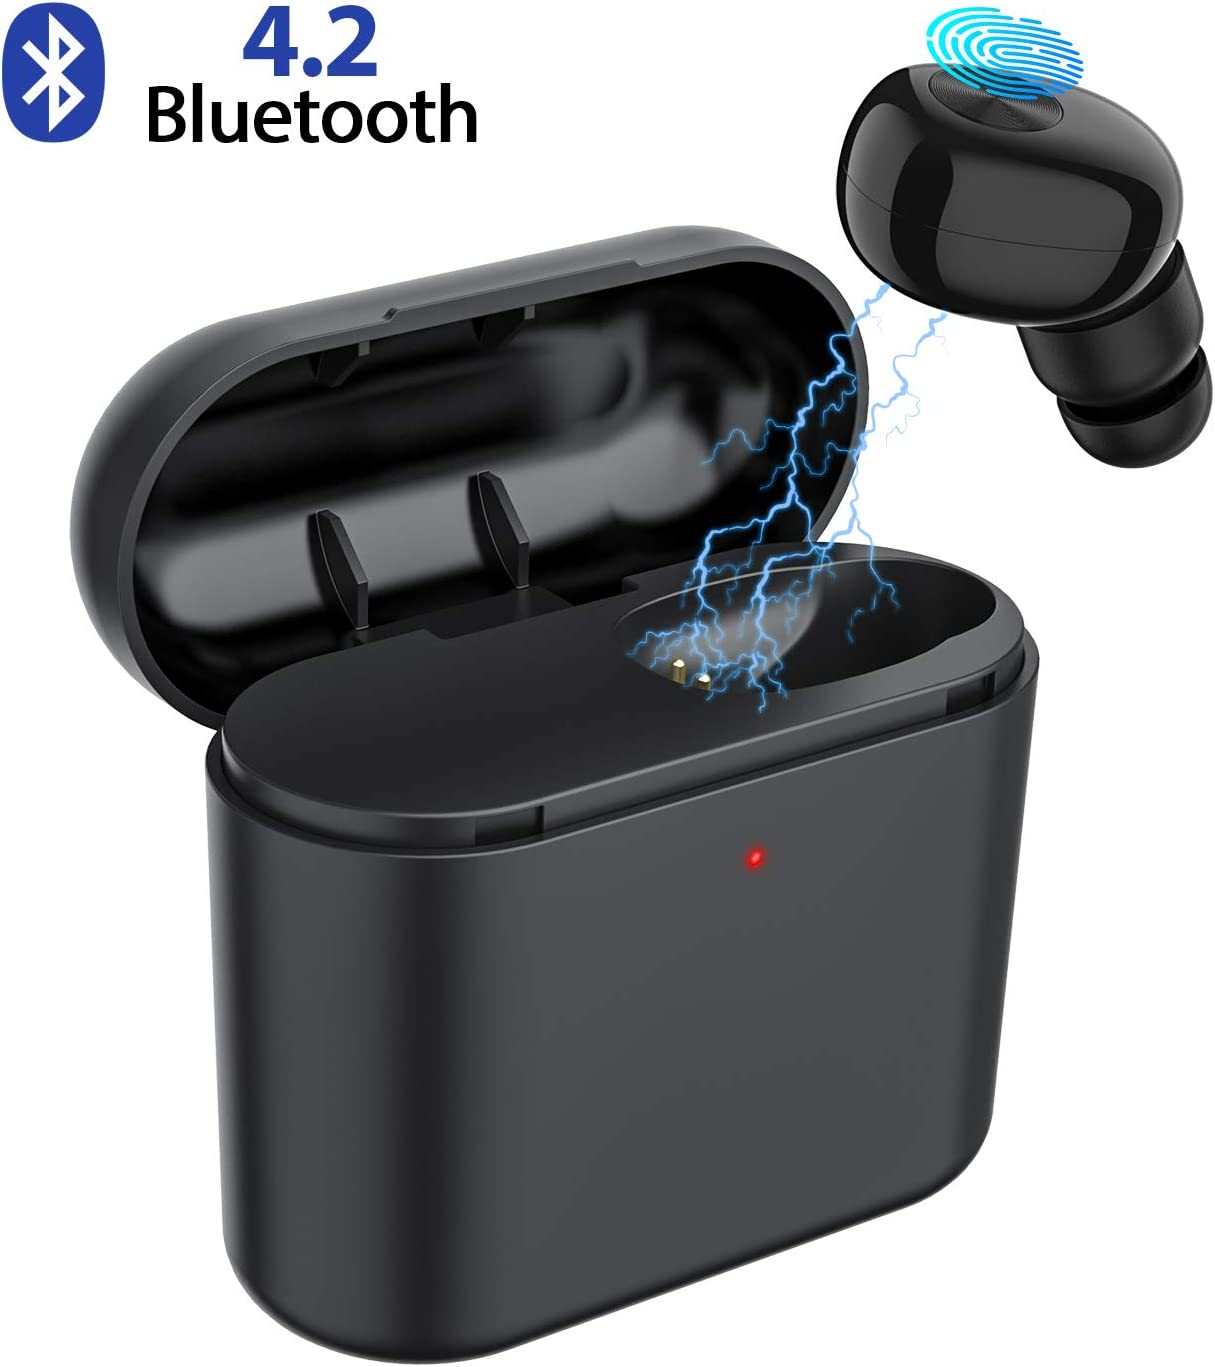 Bluetooth Earbud,ownta Wireless Headphones with Light Charging Case Headset Single Earbud Compatible Smartphone iPhone 6 7 8 Plus X iPad Samsung Android BB9